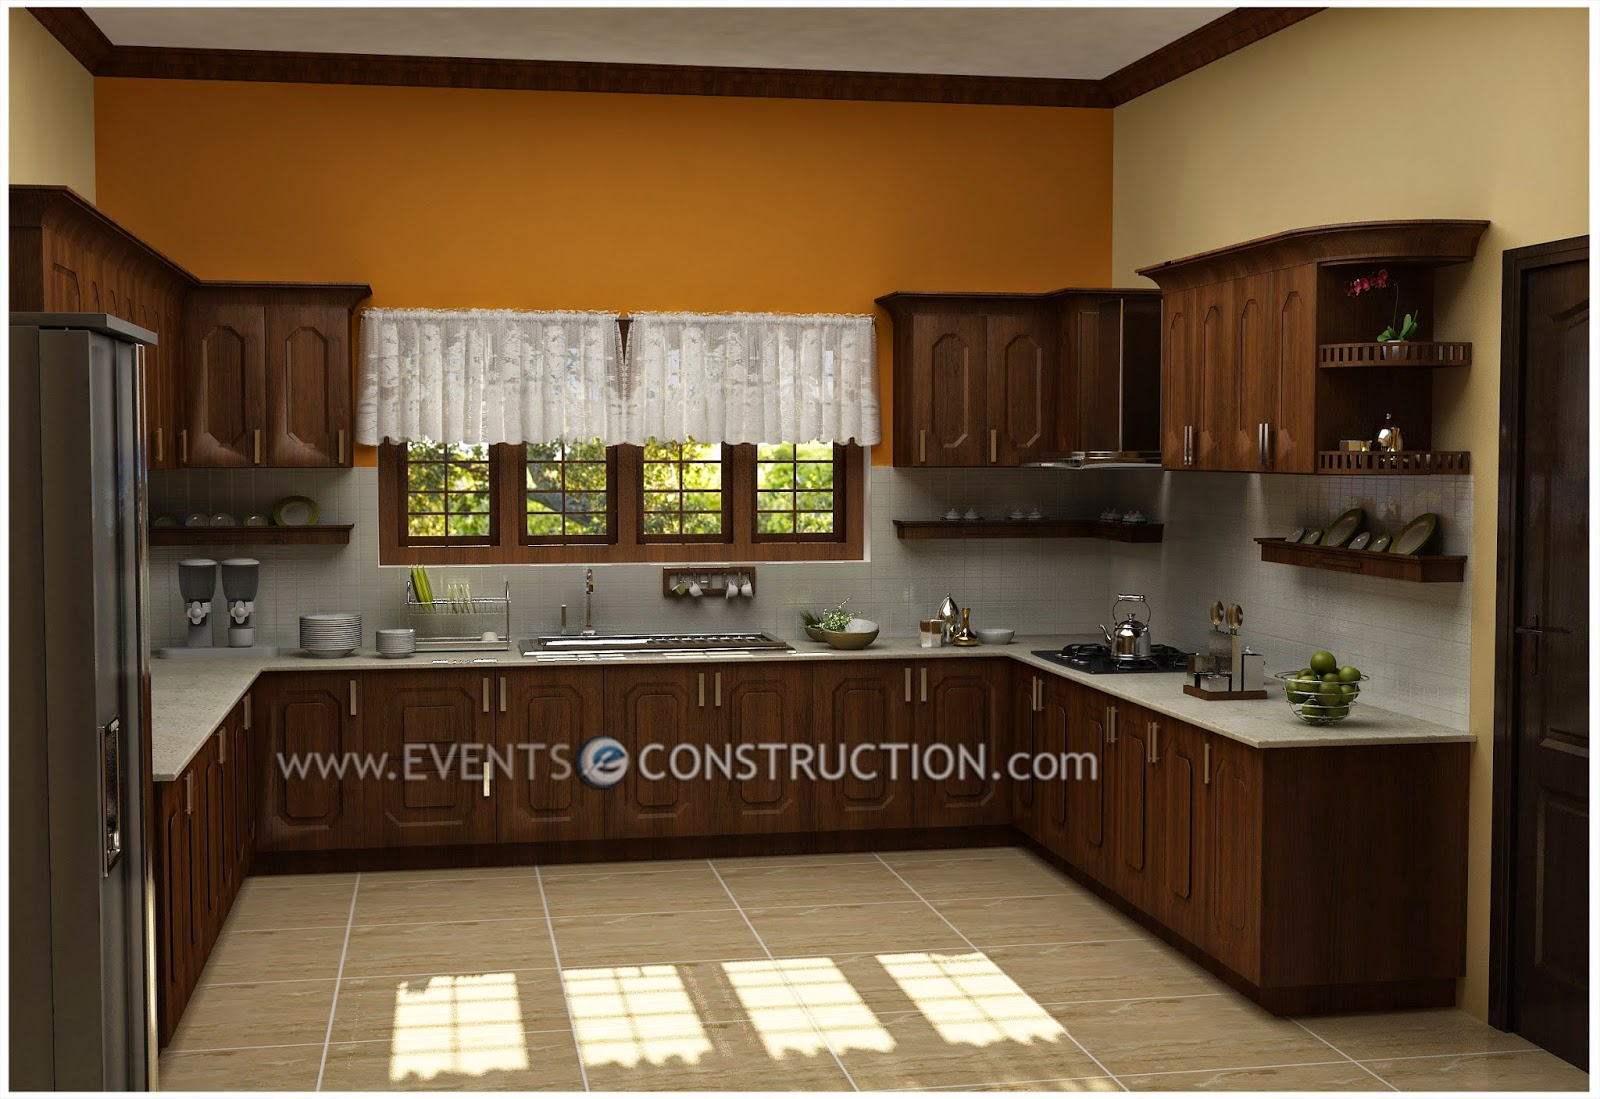 Kitchen Design Kerala Style small kitchen design in kerala style and kerala style wooden decor